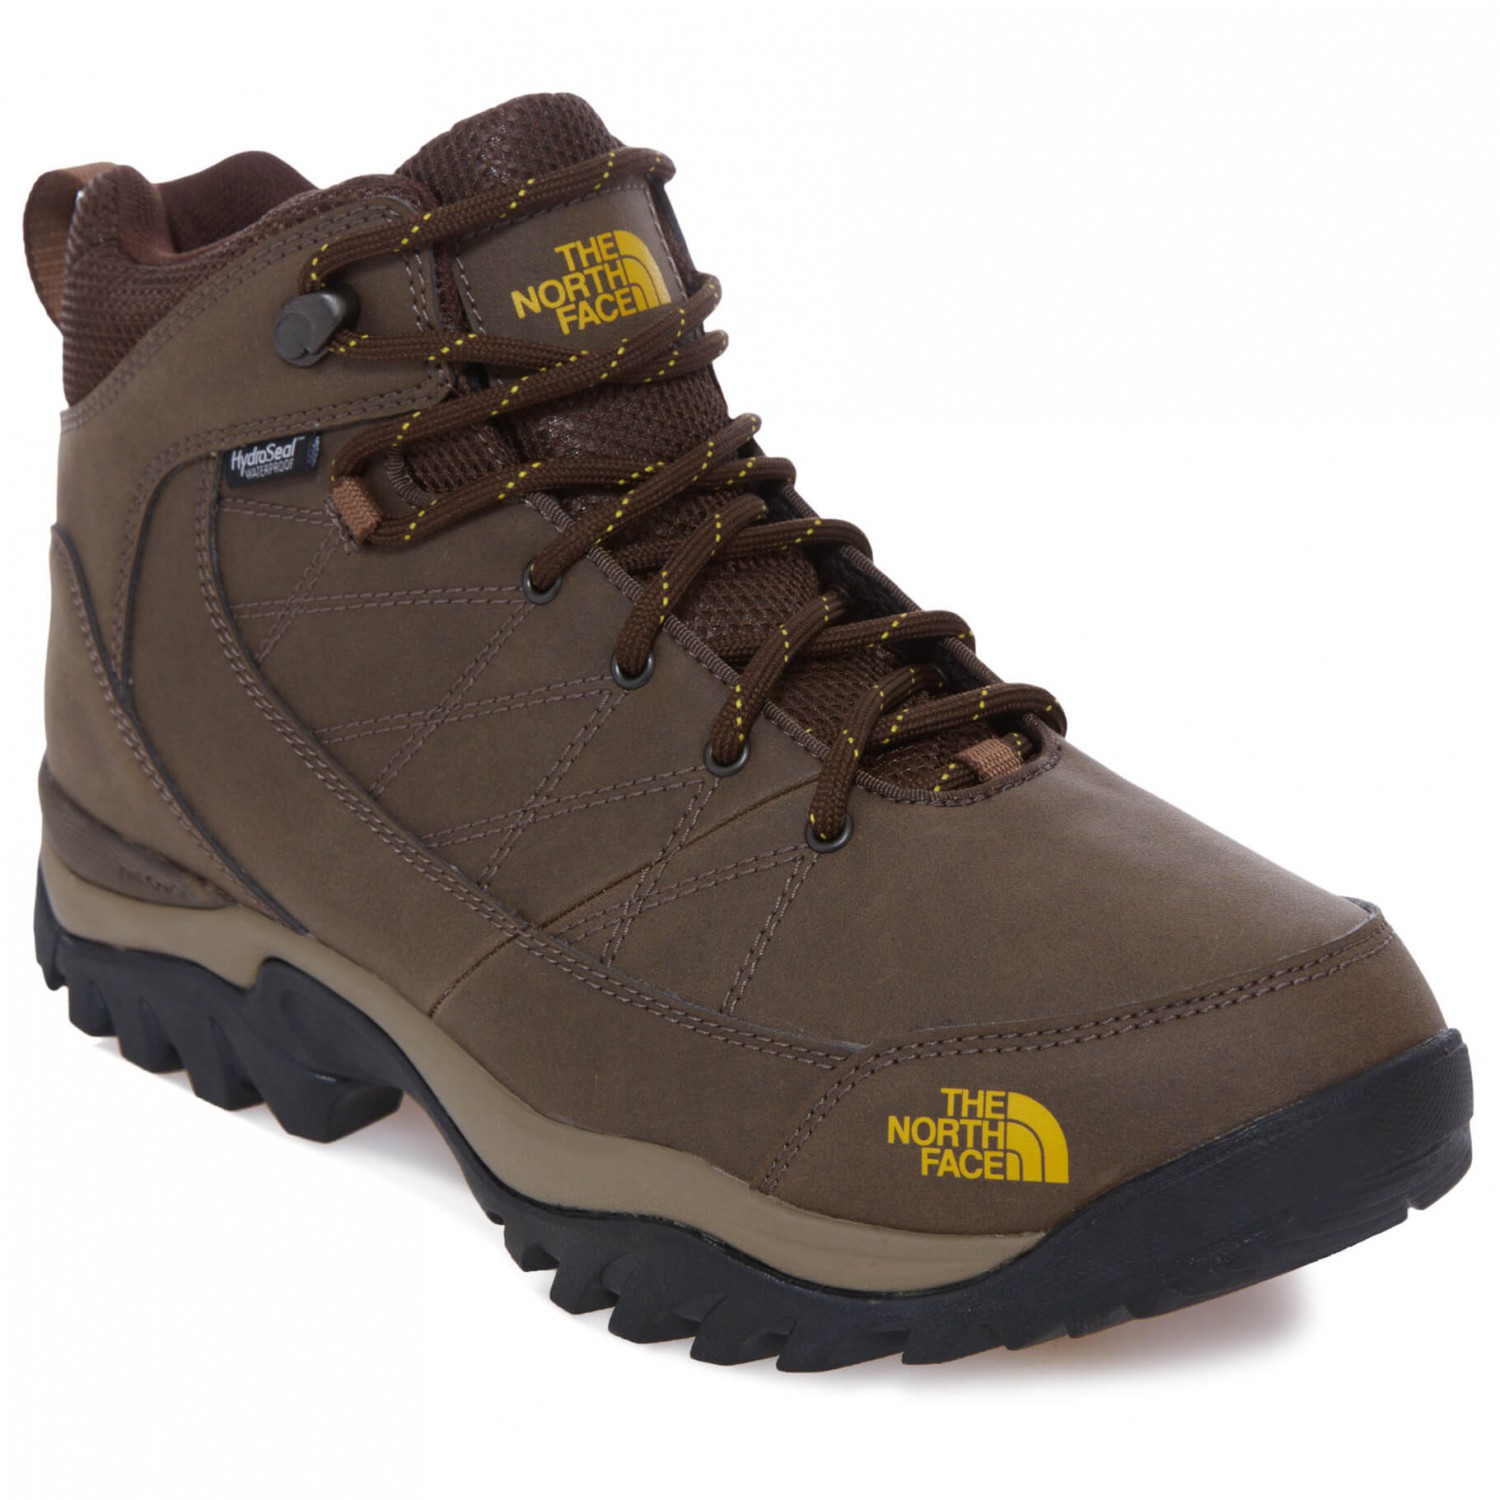 New New The North Face Storm Strike Wp Insulated Waterproof Walking Boots Black for Men On Sale Sale